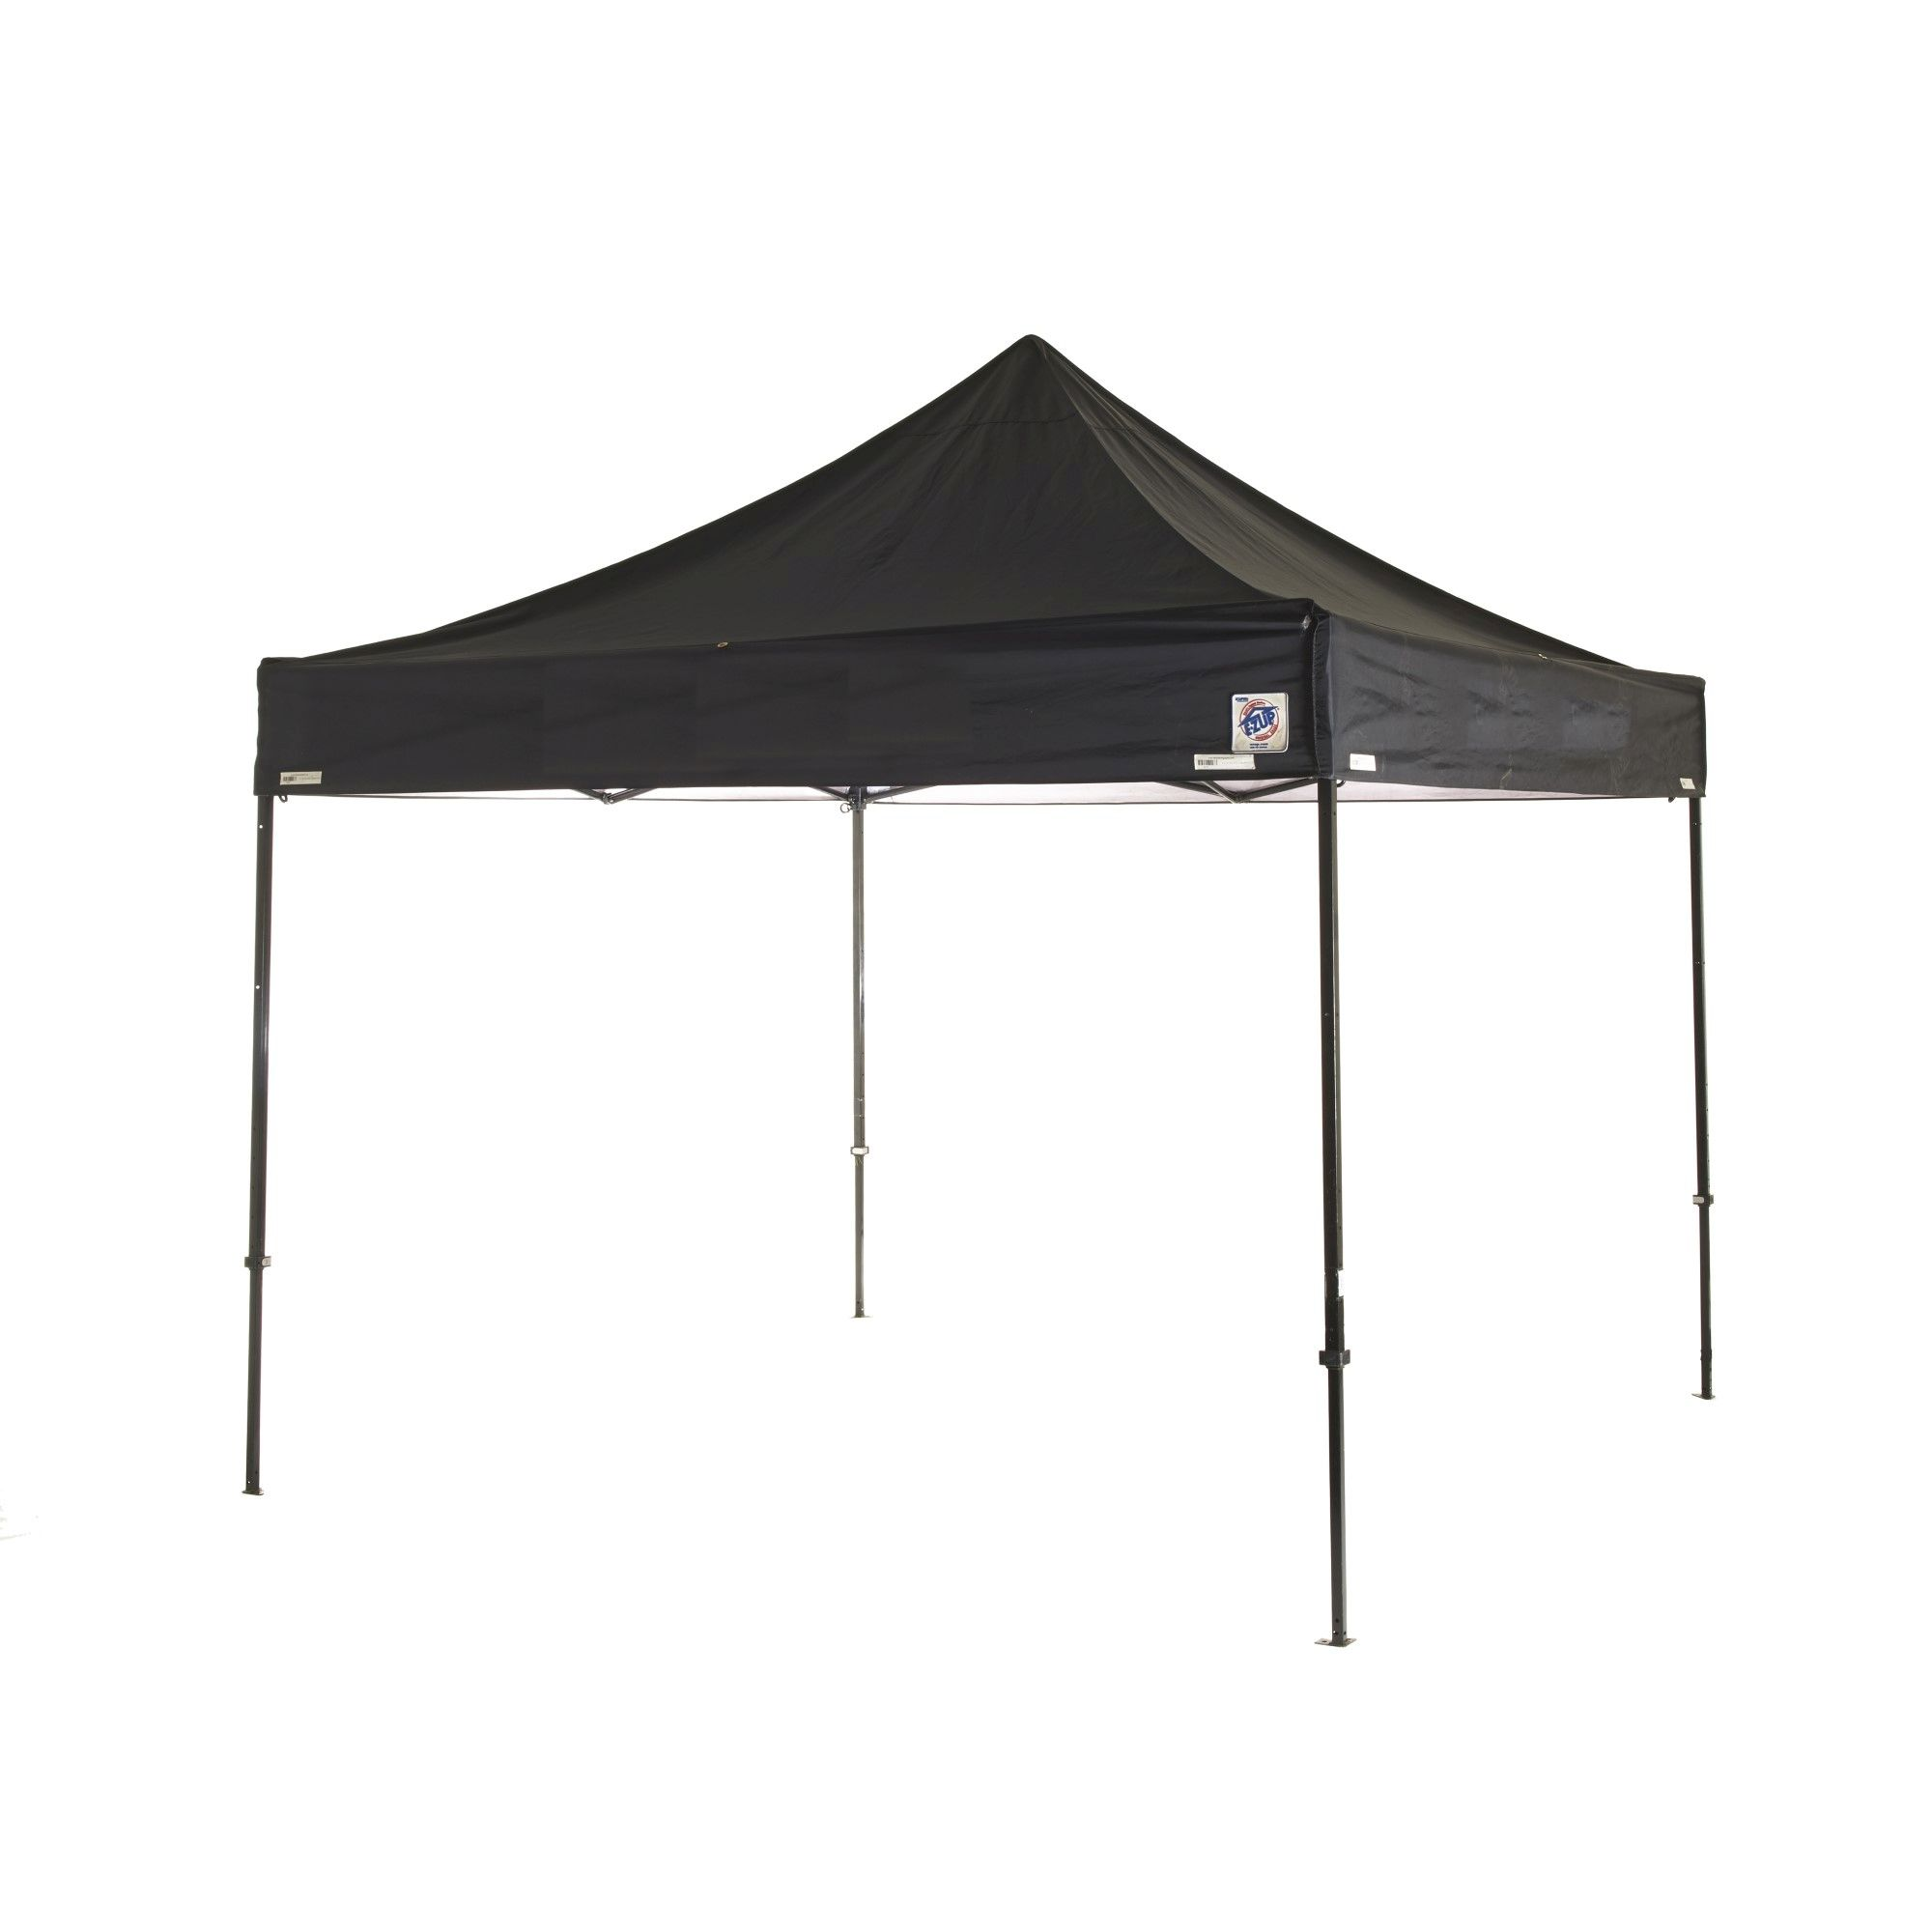 Easy Up Tent Black 3X3m / Tente Noire